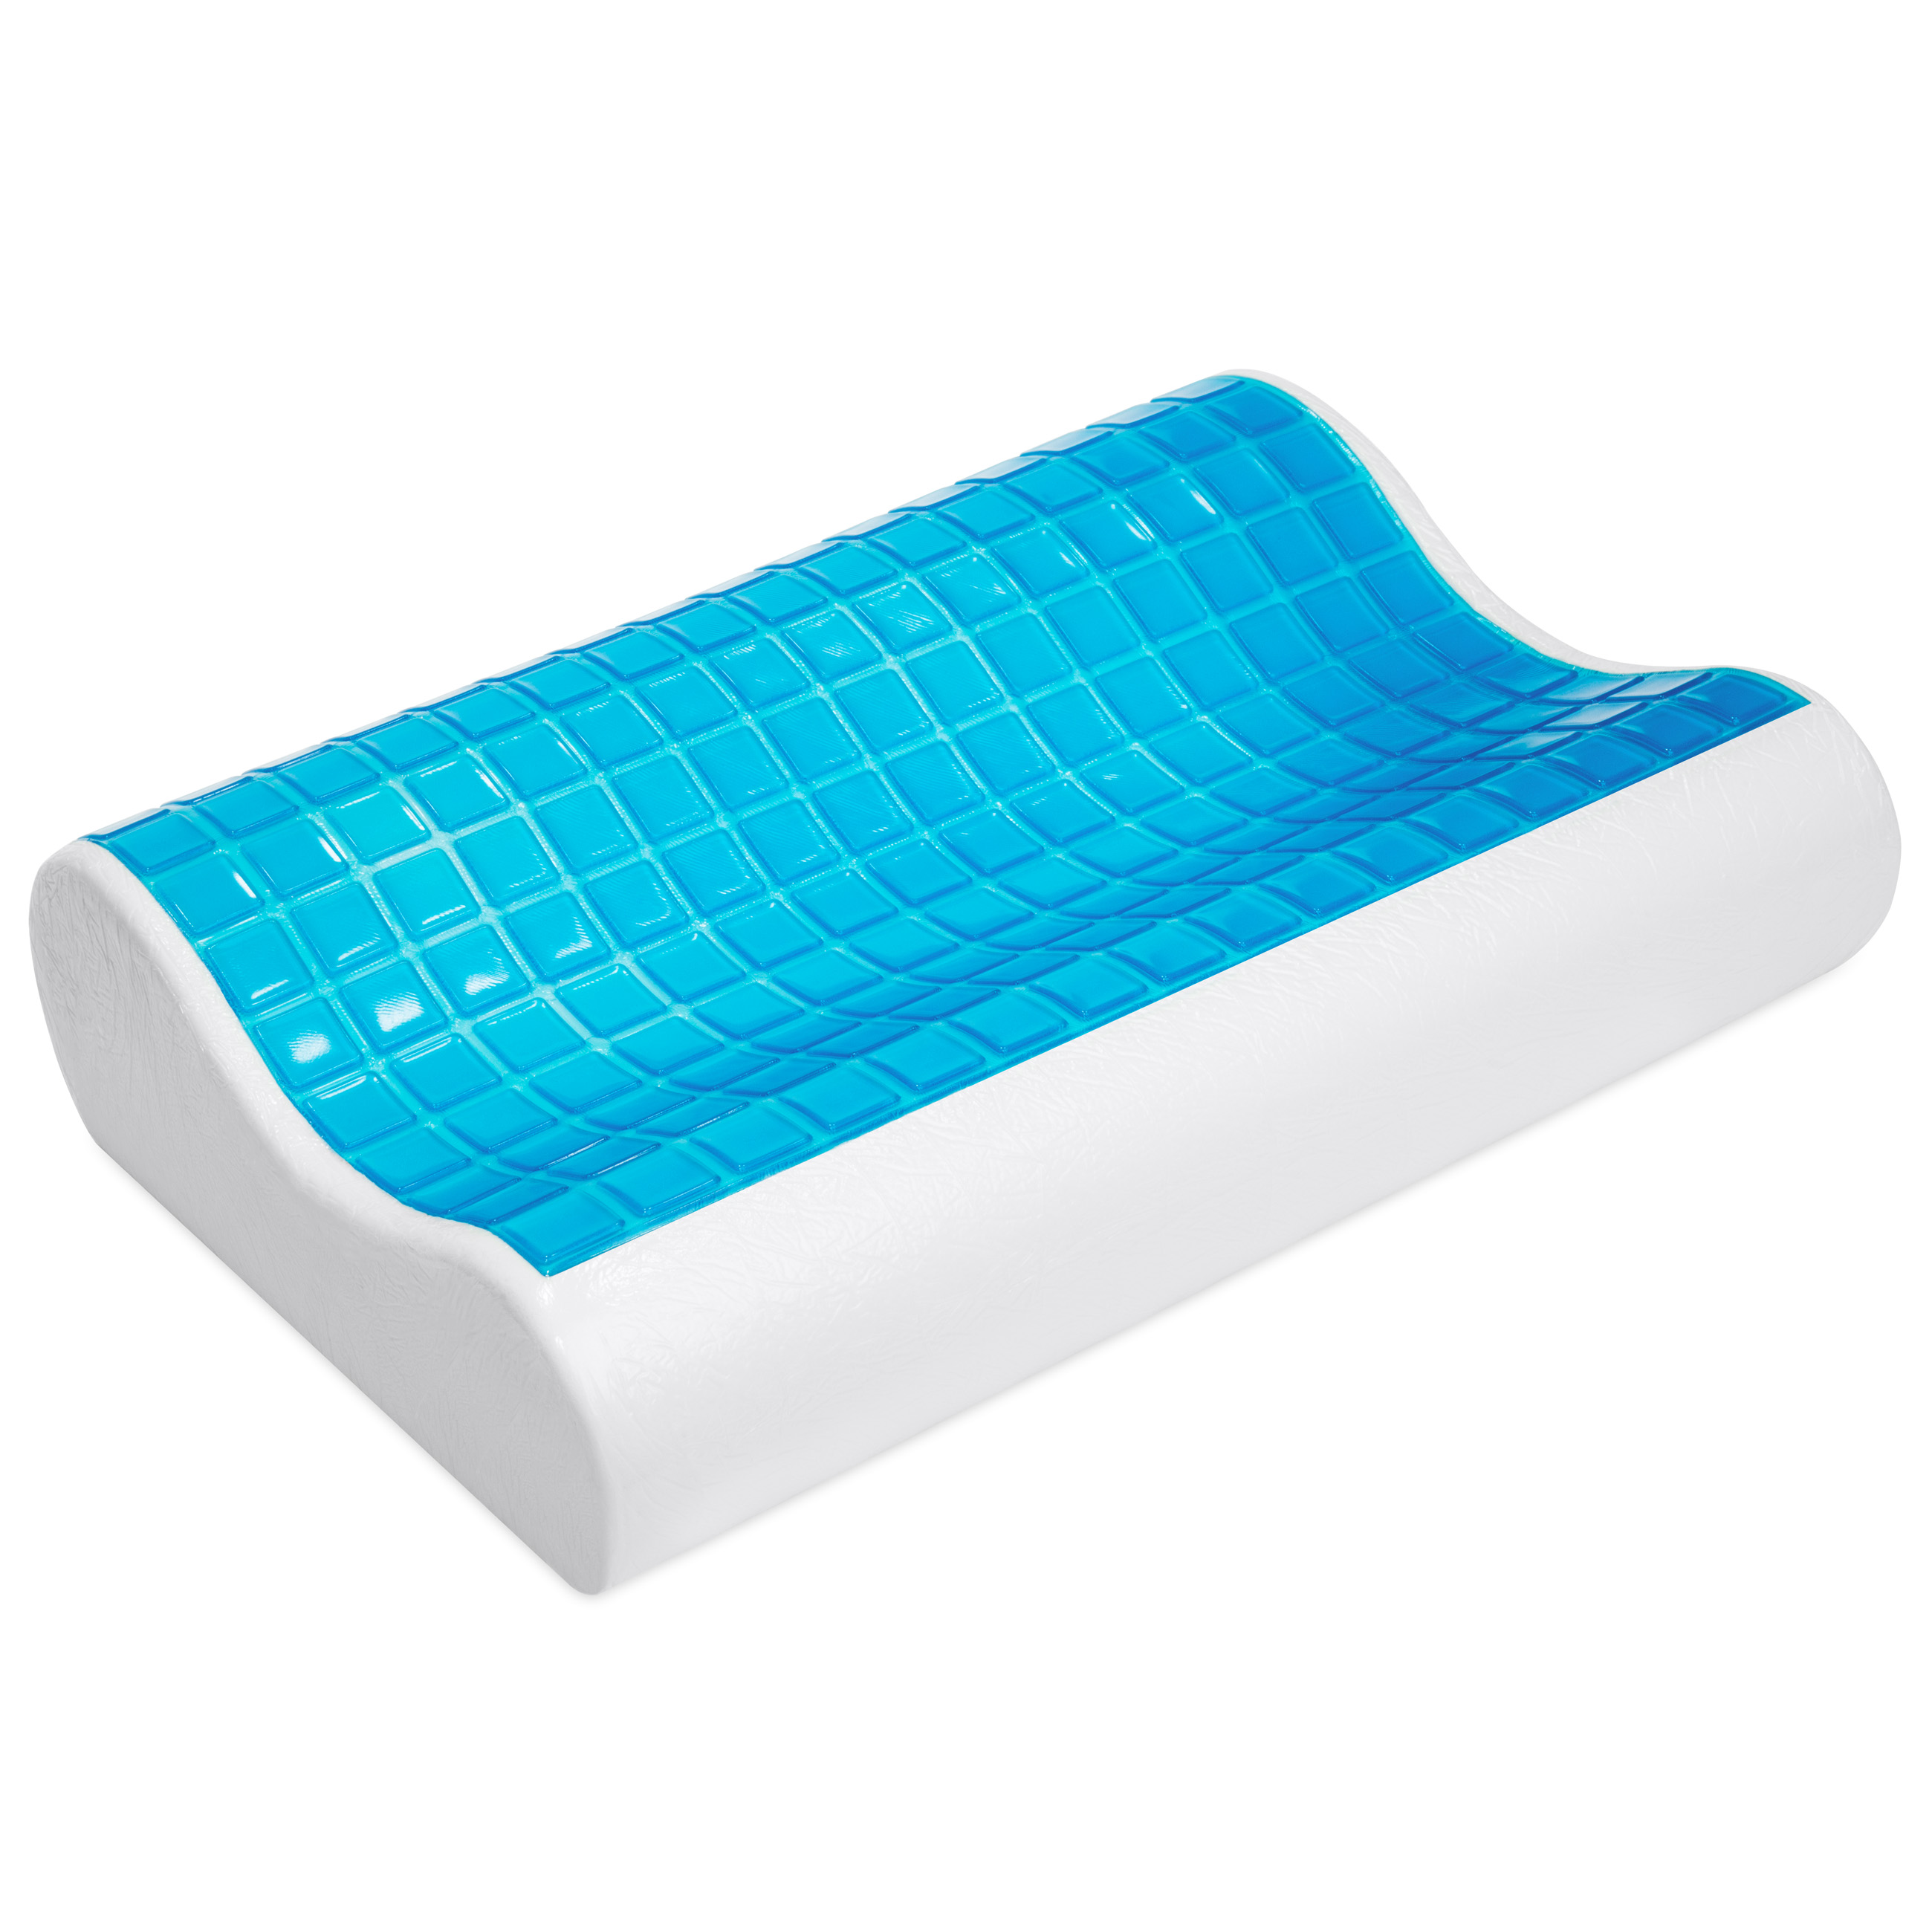 Best Choice Products Orthopedic Contour Cooling Gel Memory Foam Pillow w/ Removable Hypoallergenic Case - White/Blue